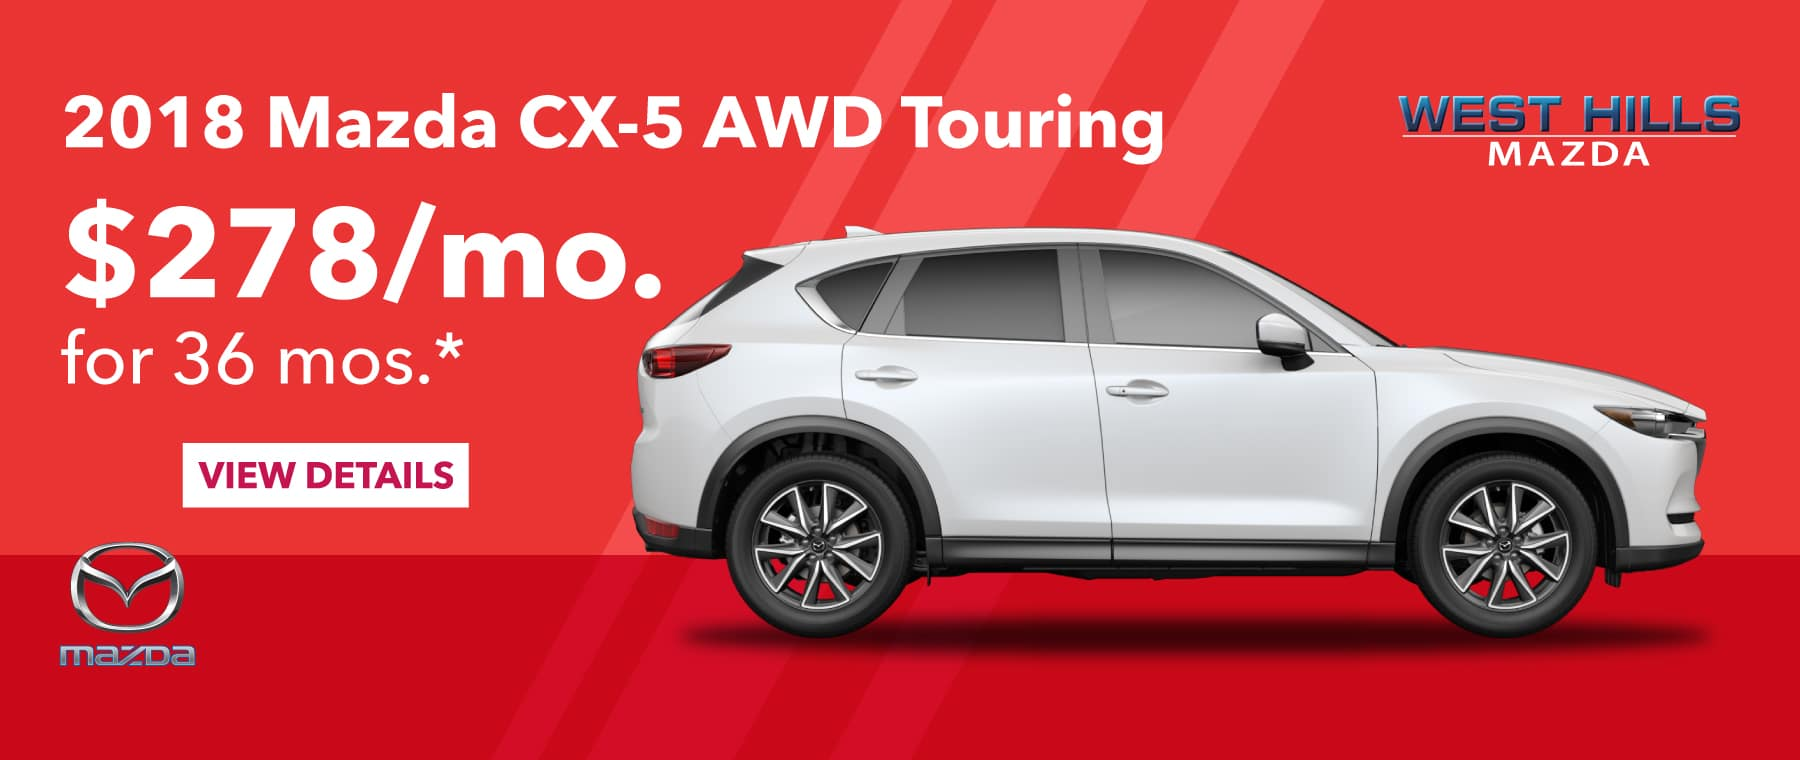 2018 Mazda CX-5 AWD Touring $278/mo. For 36 mos. *